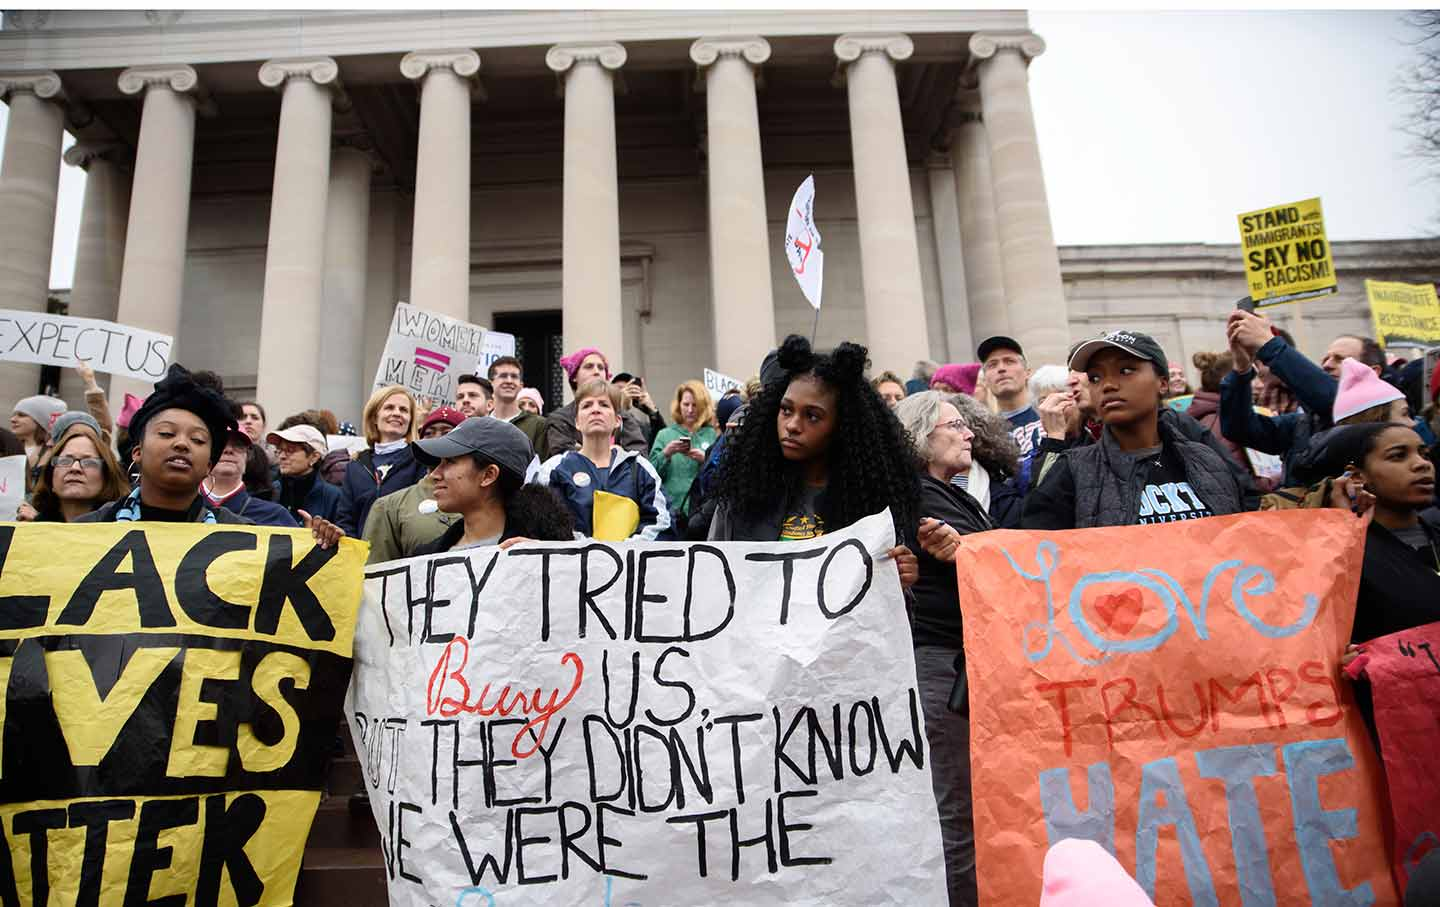 Protesters at the Women's March in Washington, DC, on January 21, 2017.  (Sipa via AP Images)